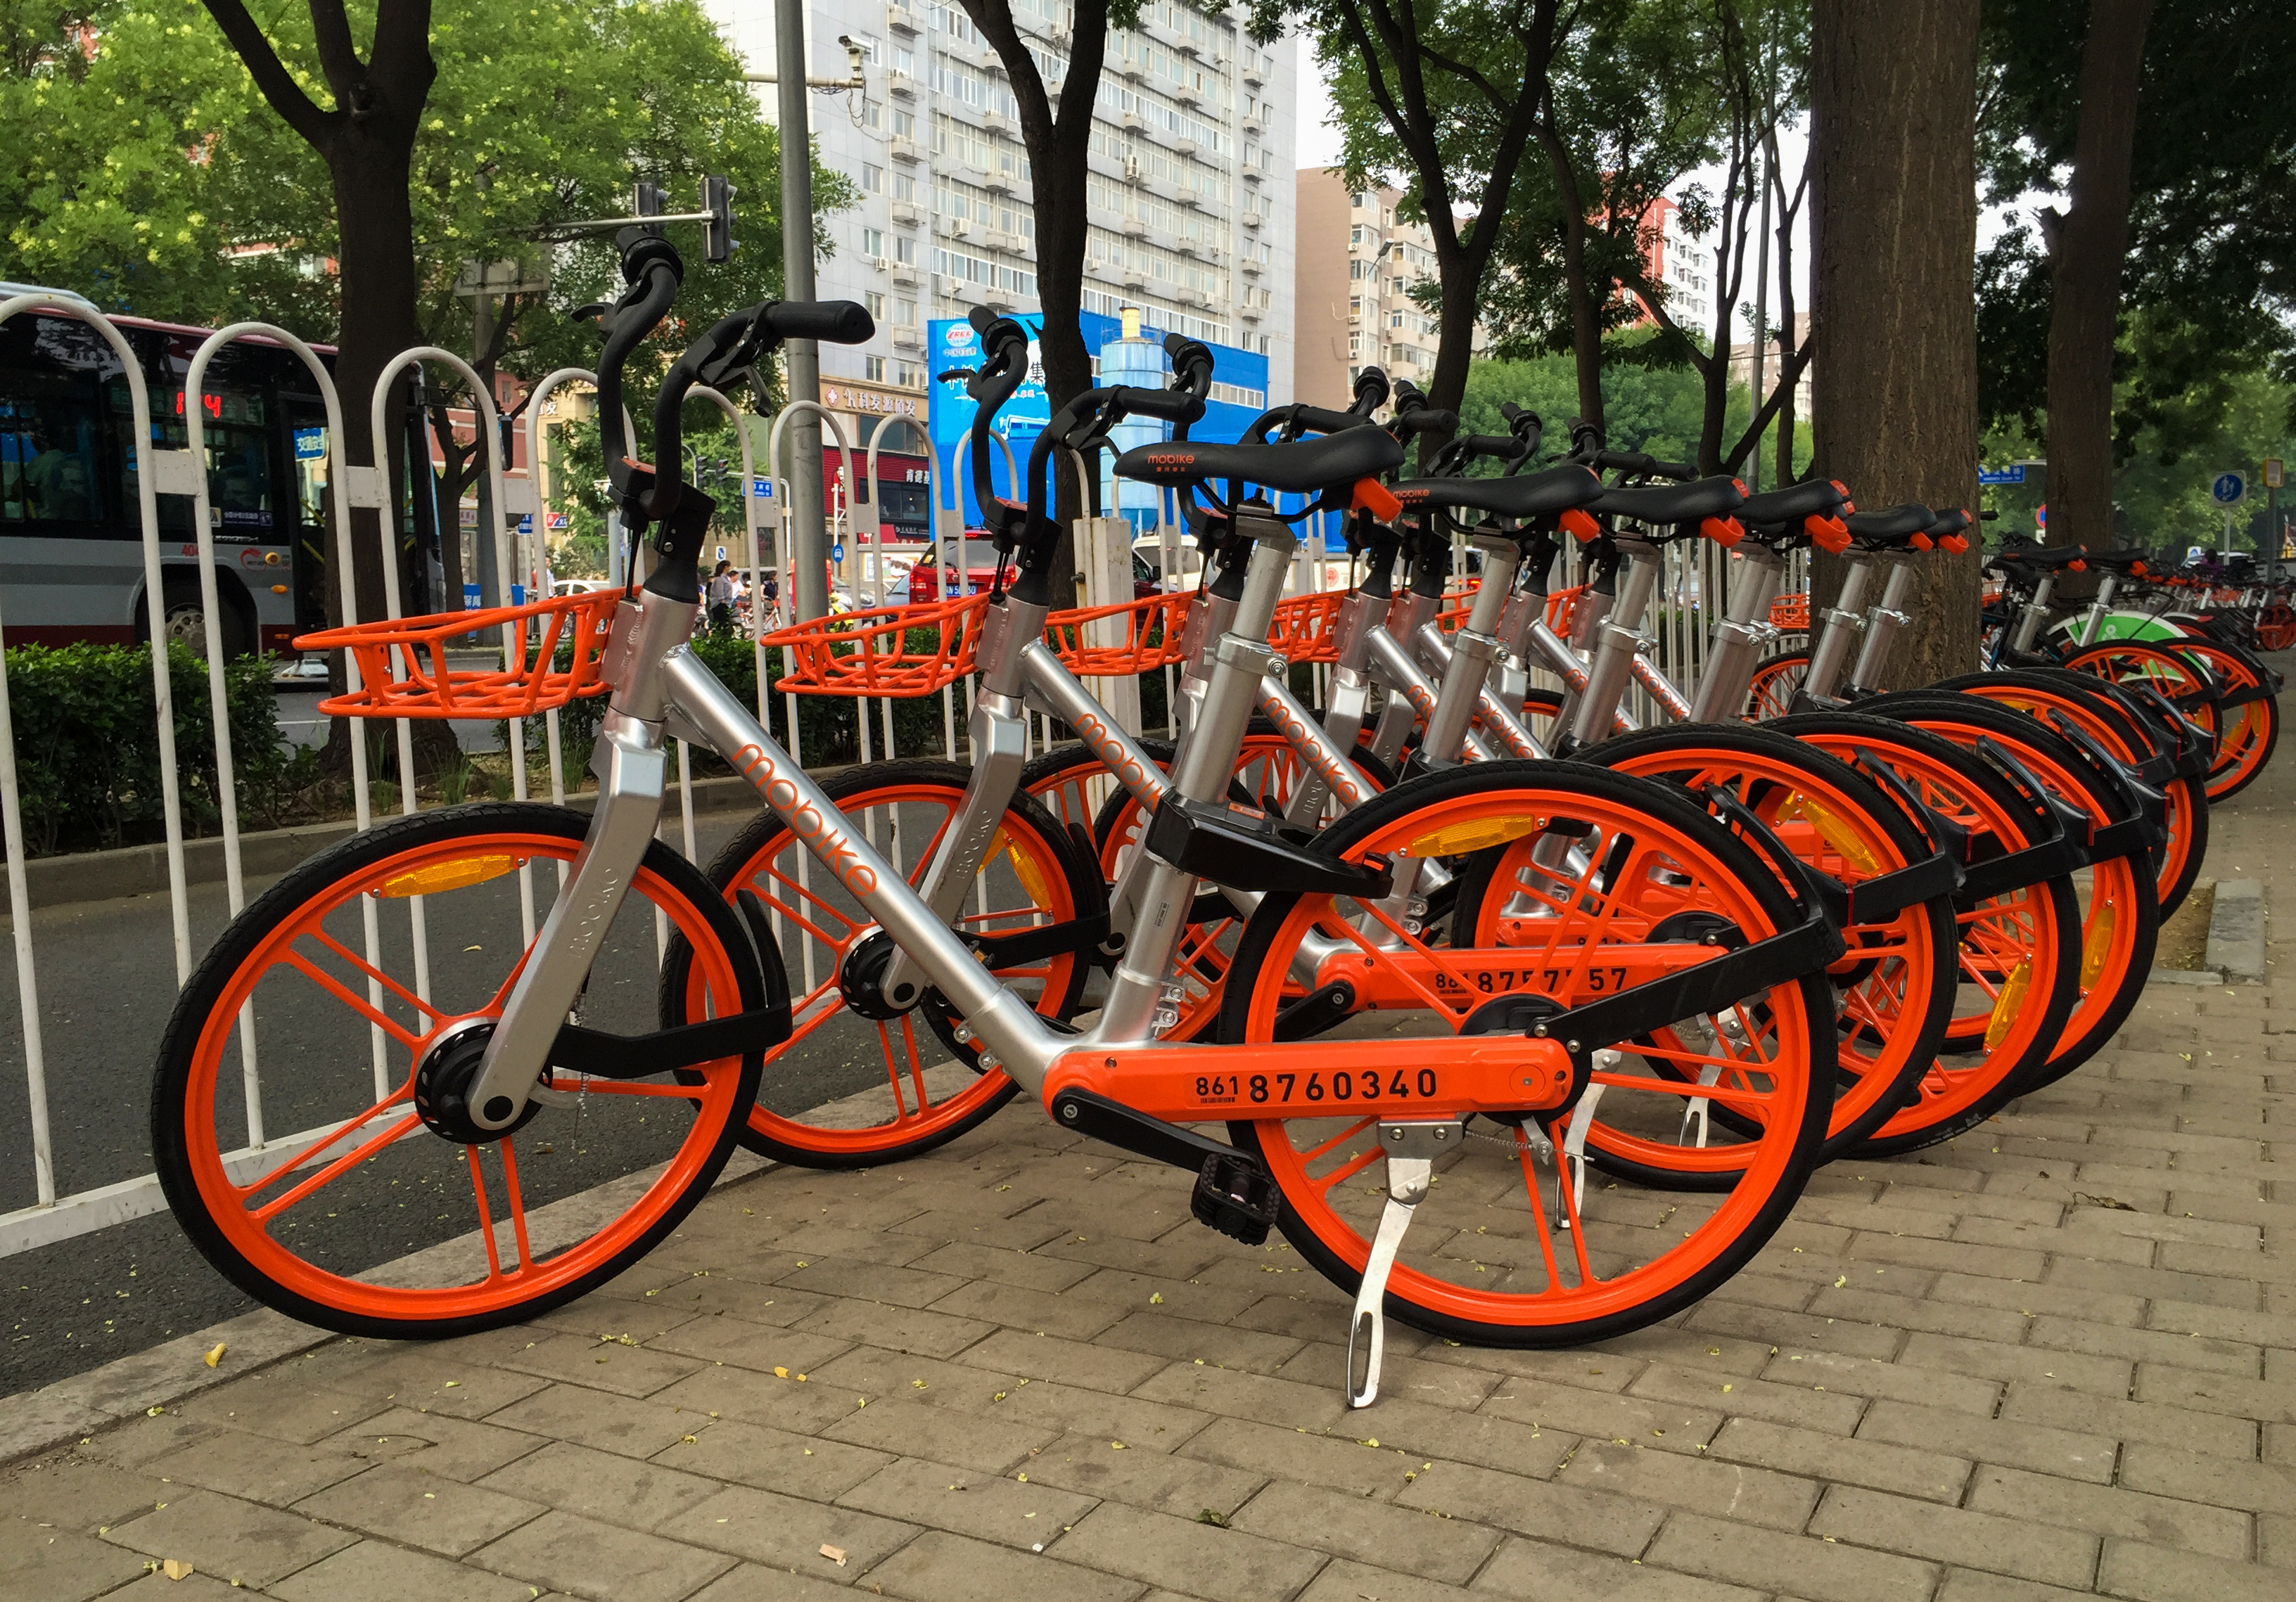 Mobikes at Haidian S Rd, Suzhou St (20170717152024).jpg